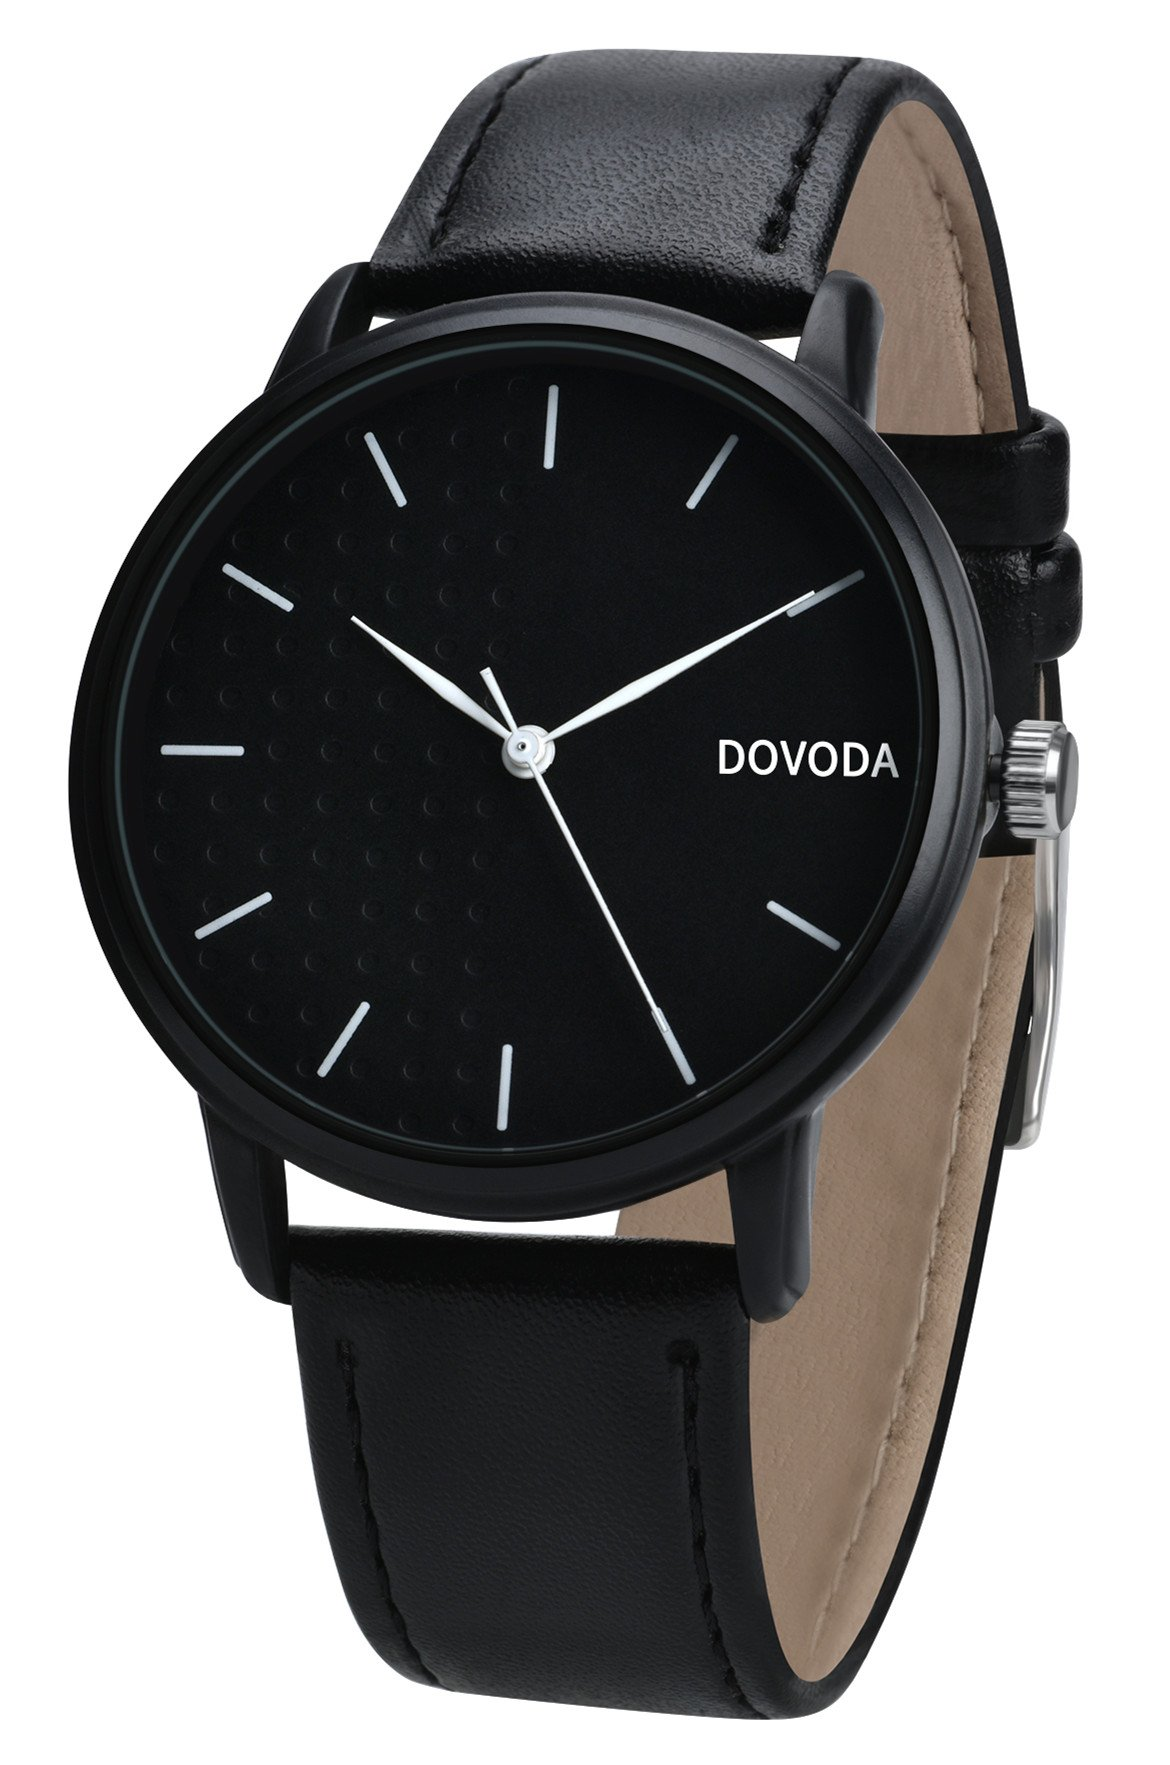 DOVODA Watches for Men Casual Classy Quartz Analog Leather Watch